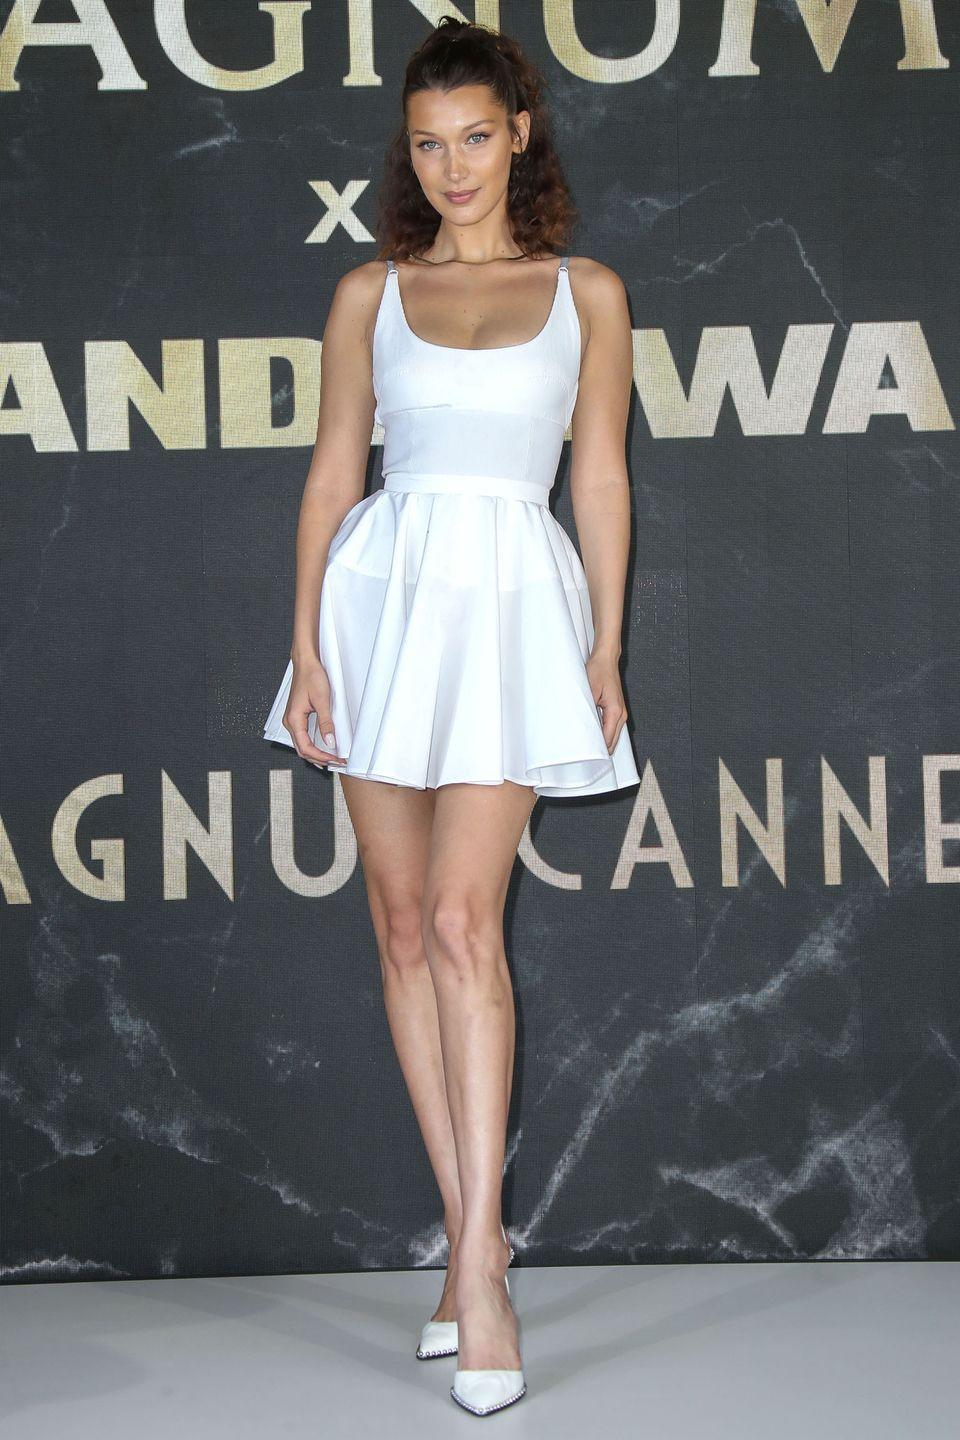 """<p>in white tennis-style mini dress with a deep scoop neckline at the Magnum press conference during the 71st <a href=""""https://www.harpersbazaar.com/celebrity/red-carpet-dresses/g20529068/cannes-2018-red-carpet/"""" rel=""""nofollow noopener"""" target=""""_blank"""" data-ylk=""""slk:Cannes Film Festival"""" class=""""link rapid-noclick-resp"""">Cannes Film Festival</a>.</p>"""